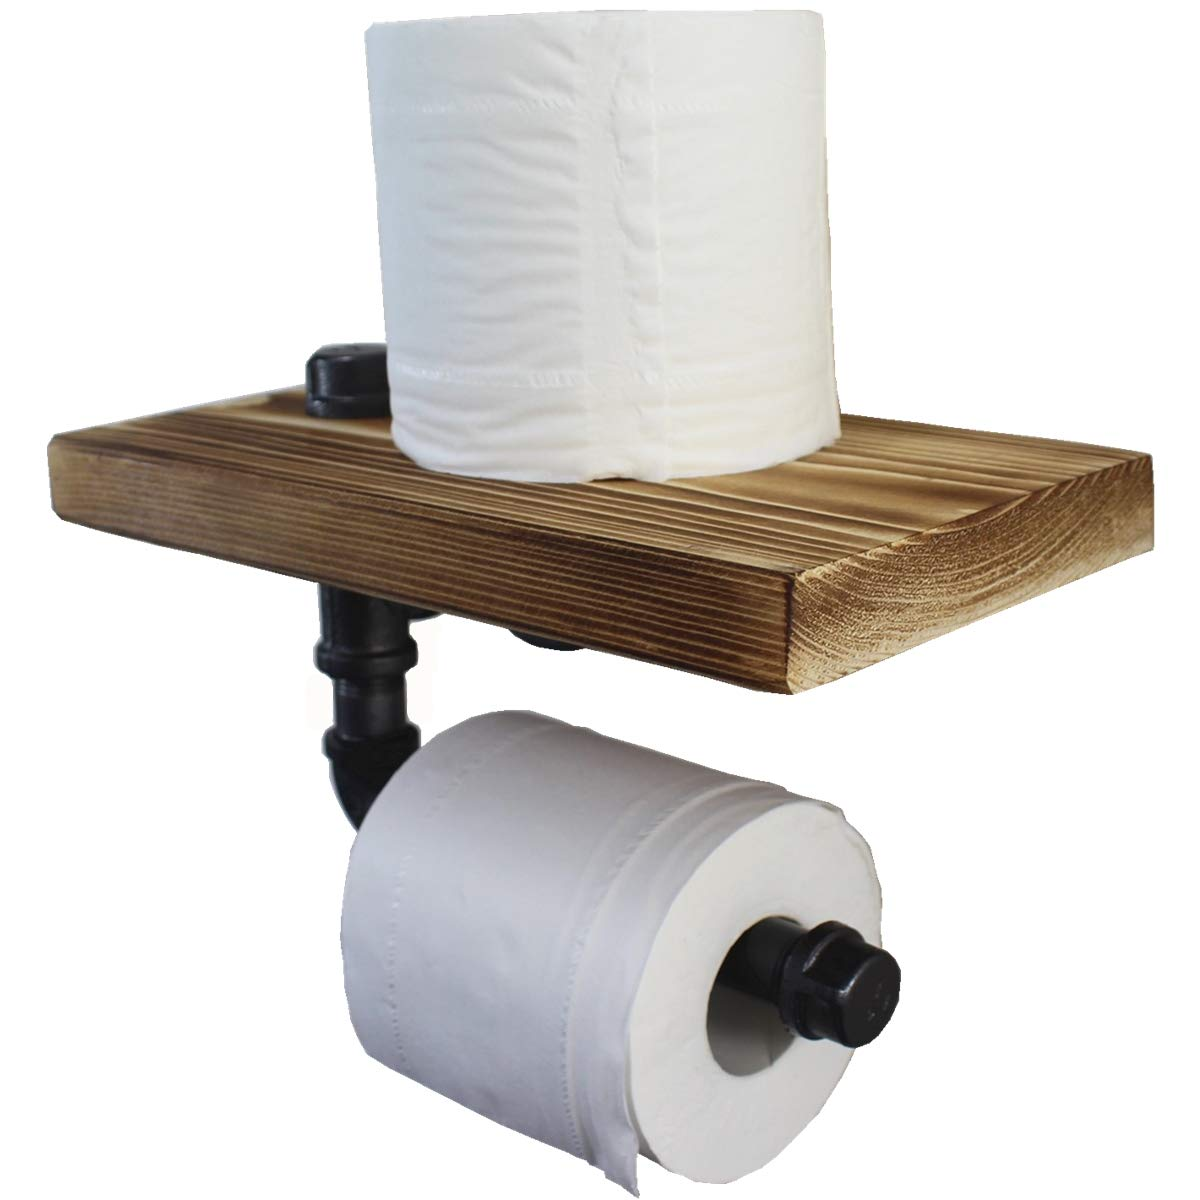 Industrial 1/2'' Iron Pipe Toilet Paper Roll Holder with Rustic Wooden Shelf Wall Mounted Urban Bathroom Storage Pipe Decor